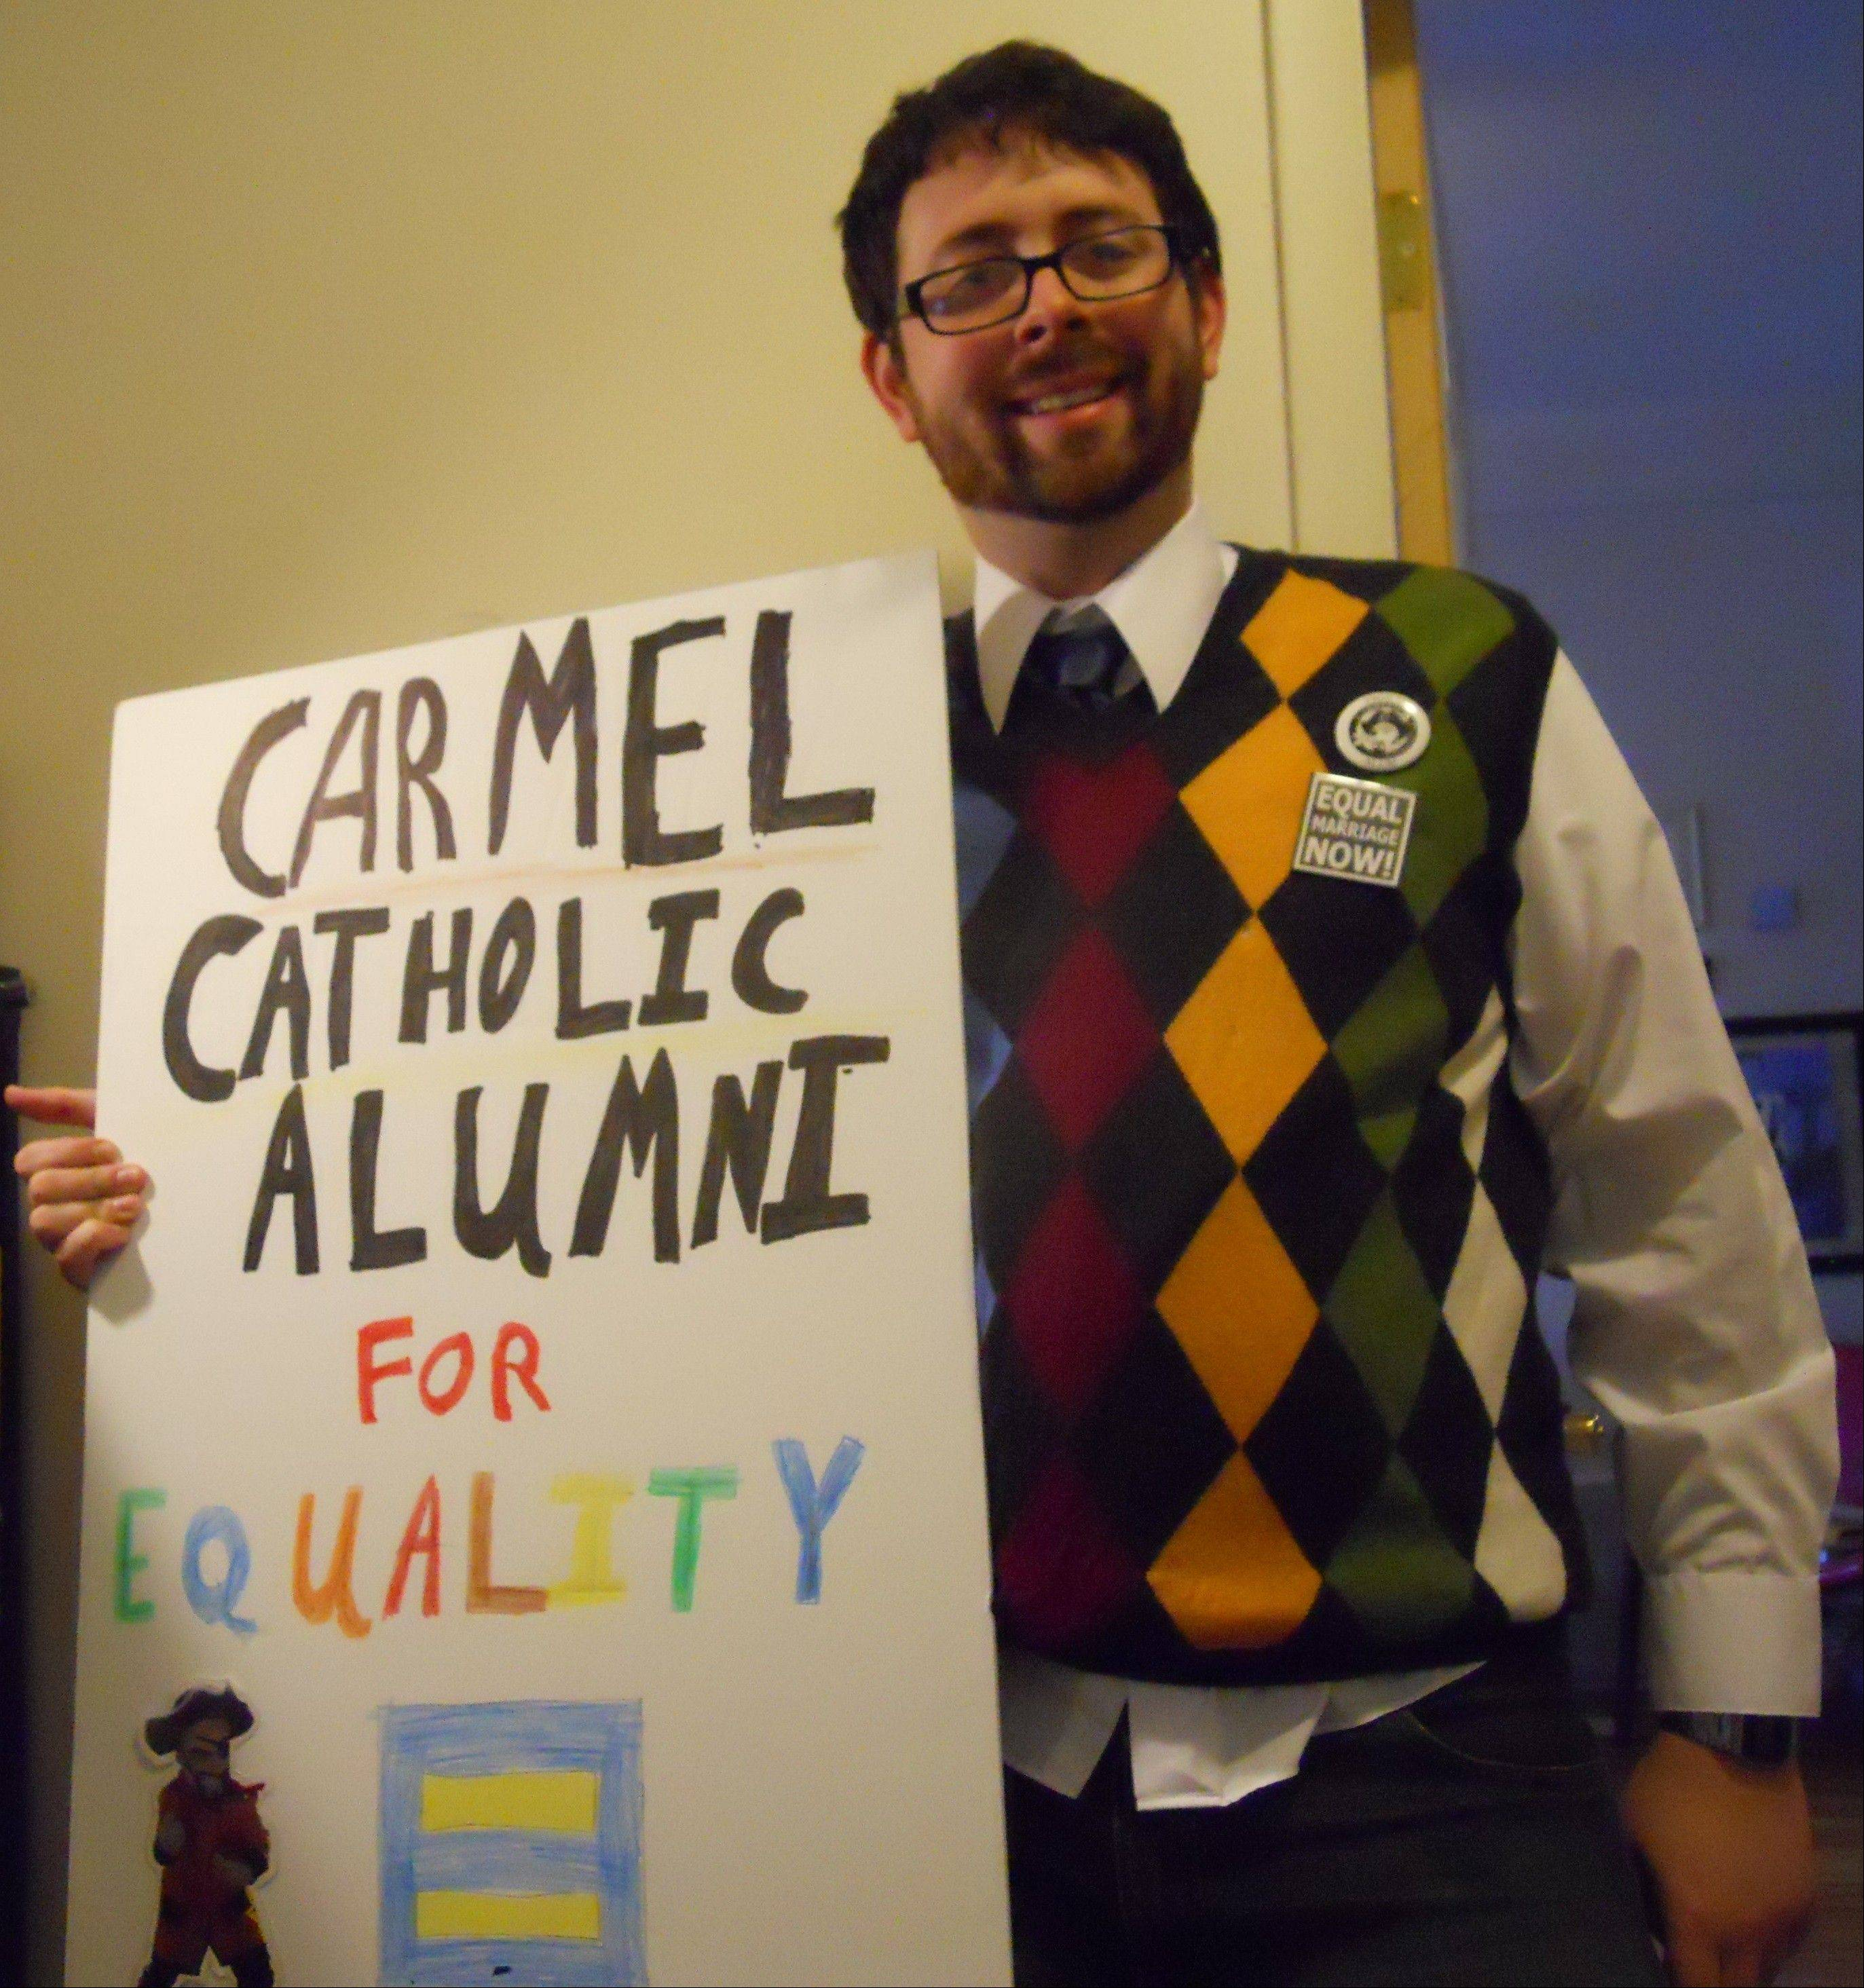 Matt Muchowski, from the Carmel Catholic Alumni Against Rick Santorum group, poses with one of the signs he'll have at Friday's protest when the Republican presidential candidate comes to Christian Liberty Academy in Arlington Heights. Santorum graduated from Carmel Catholic High School in Mundelein in 1976; Muchowski in 2002.